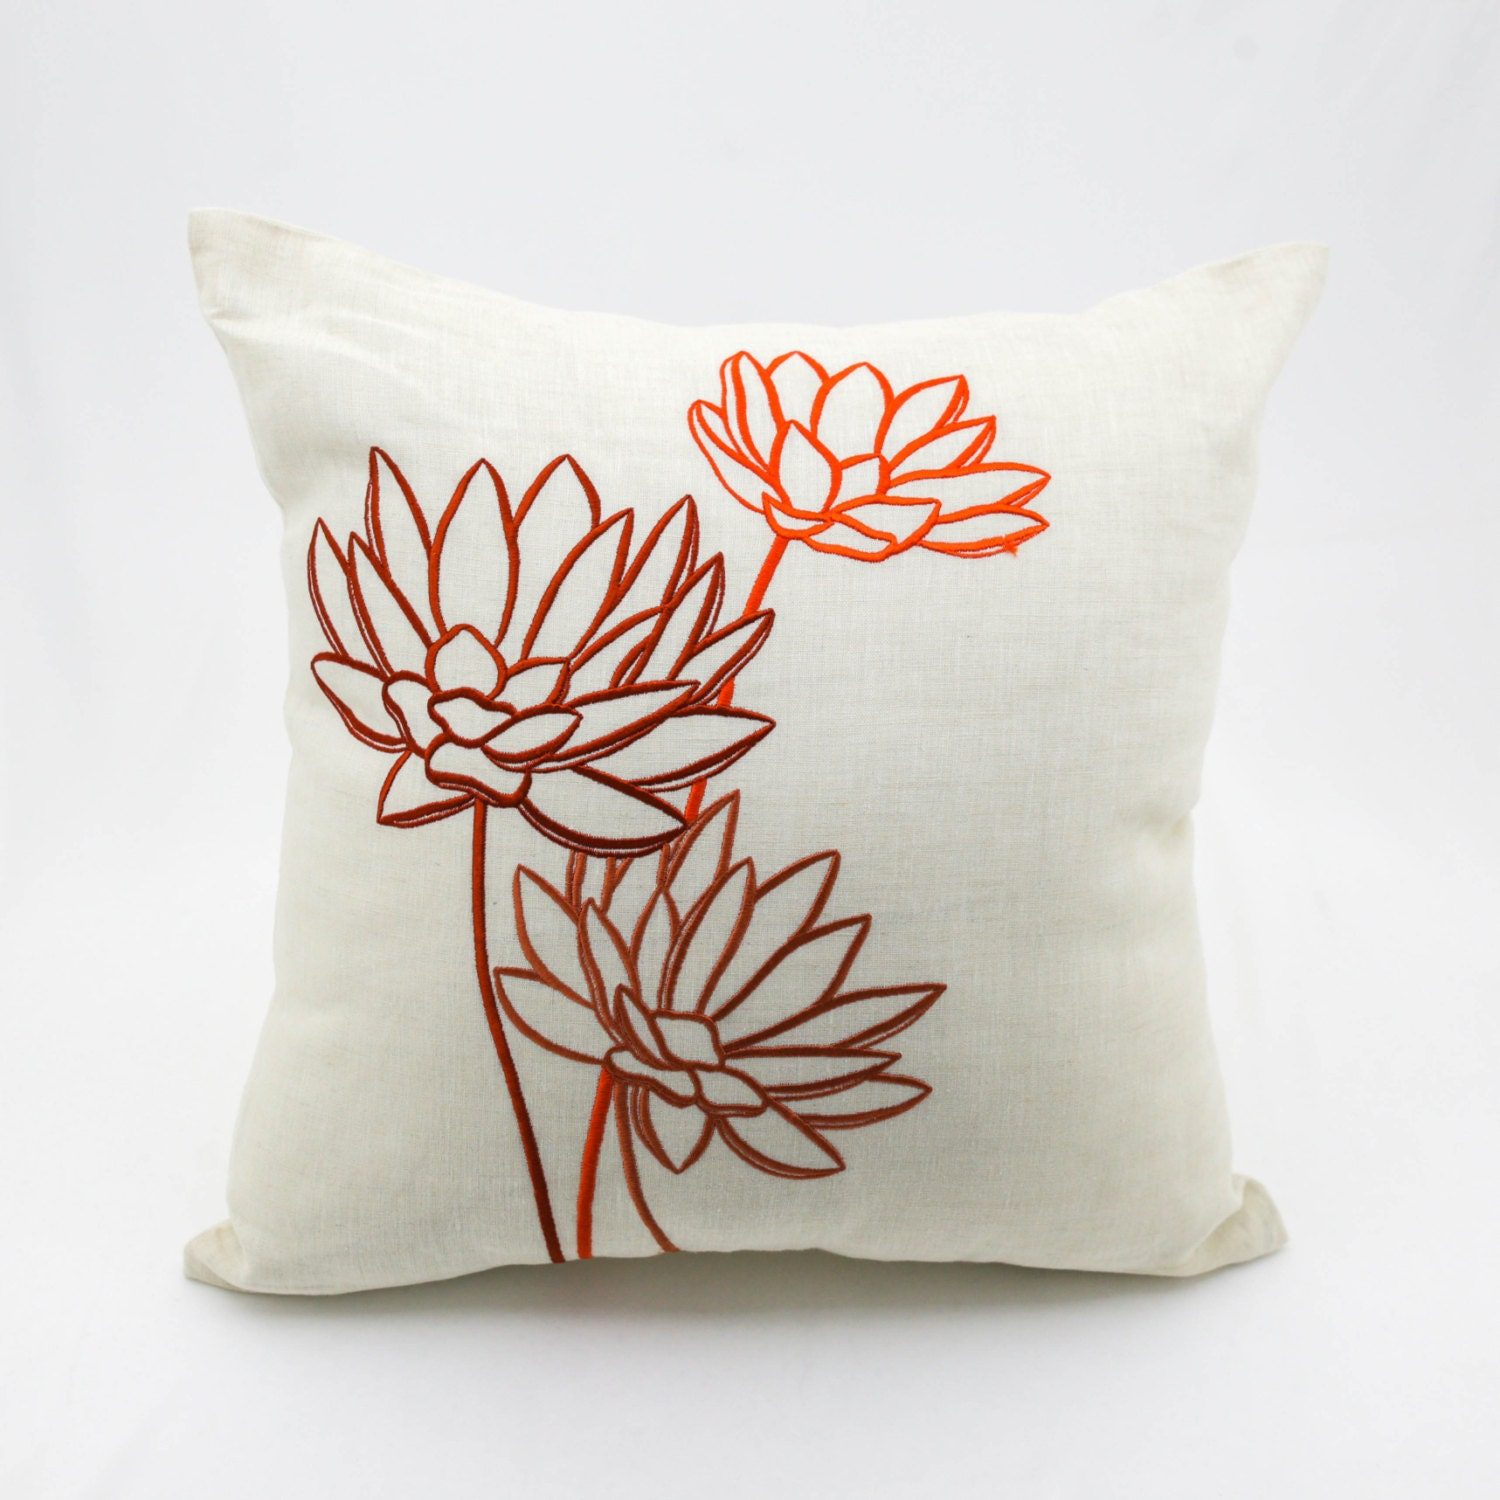 Lotus Pillow Case Floral Throw Pillow Beige Linen Orange